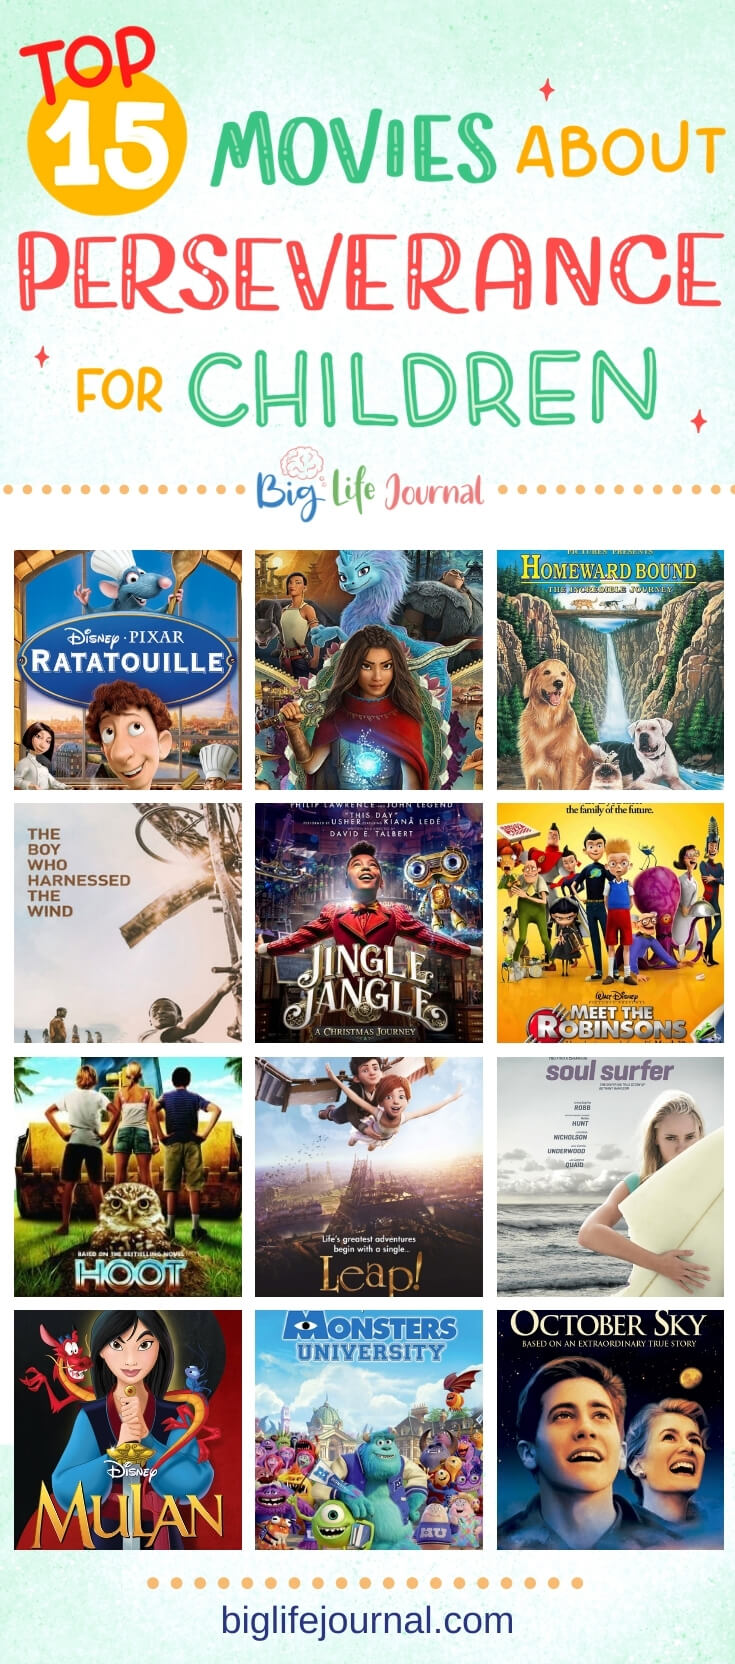 Top Movies About Perseverance for Children